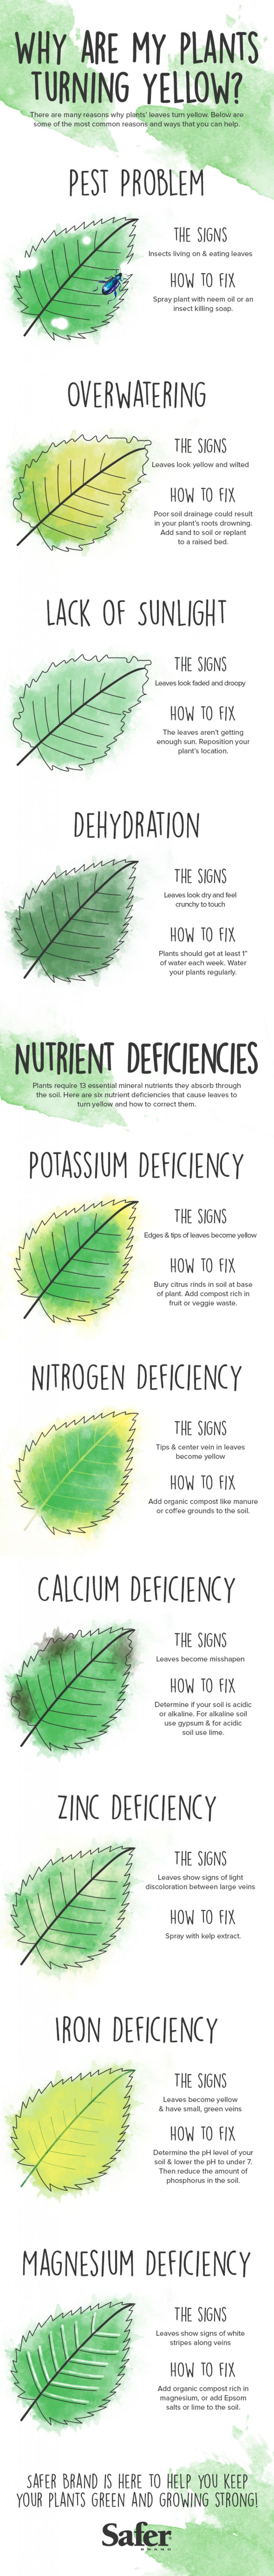 Why Are My Plants Turning Yellow? #Infographic #infografía